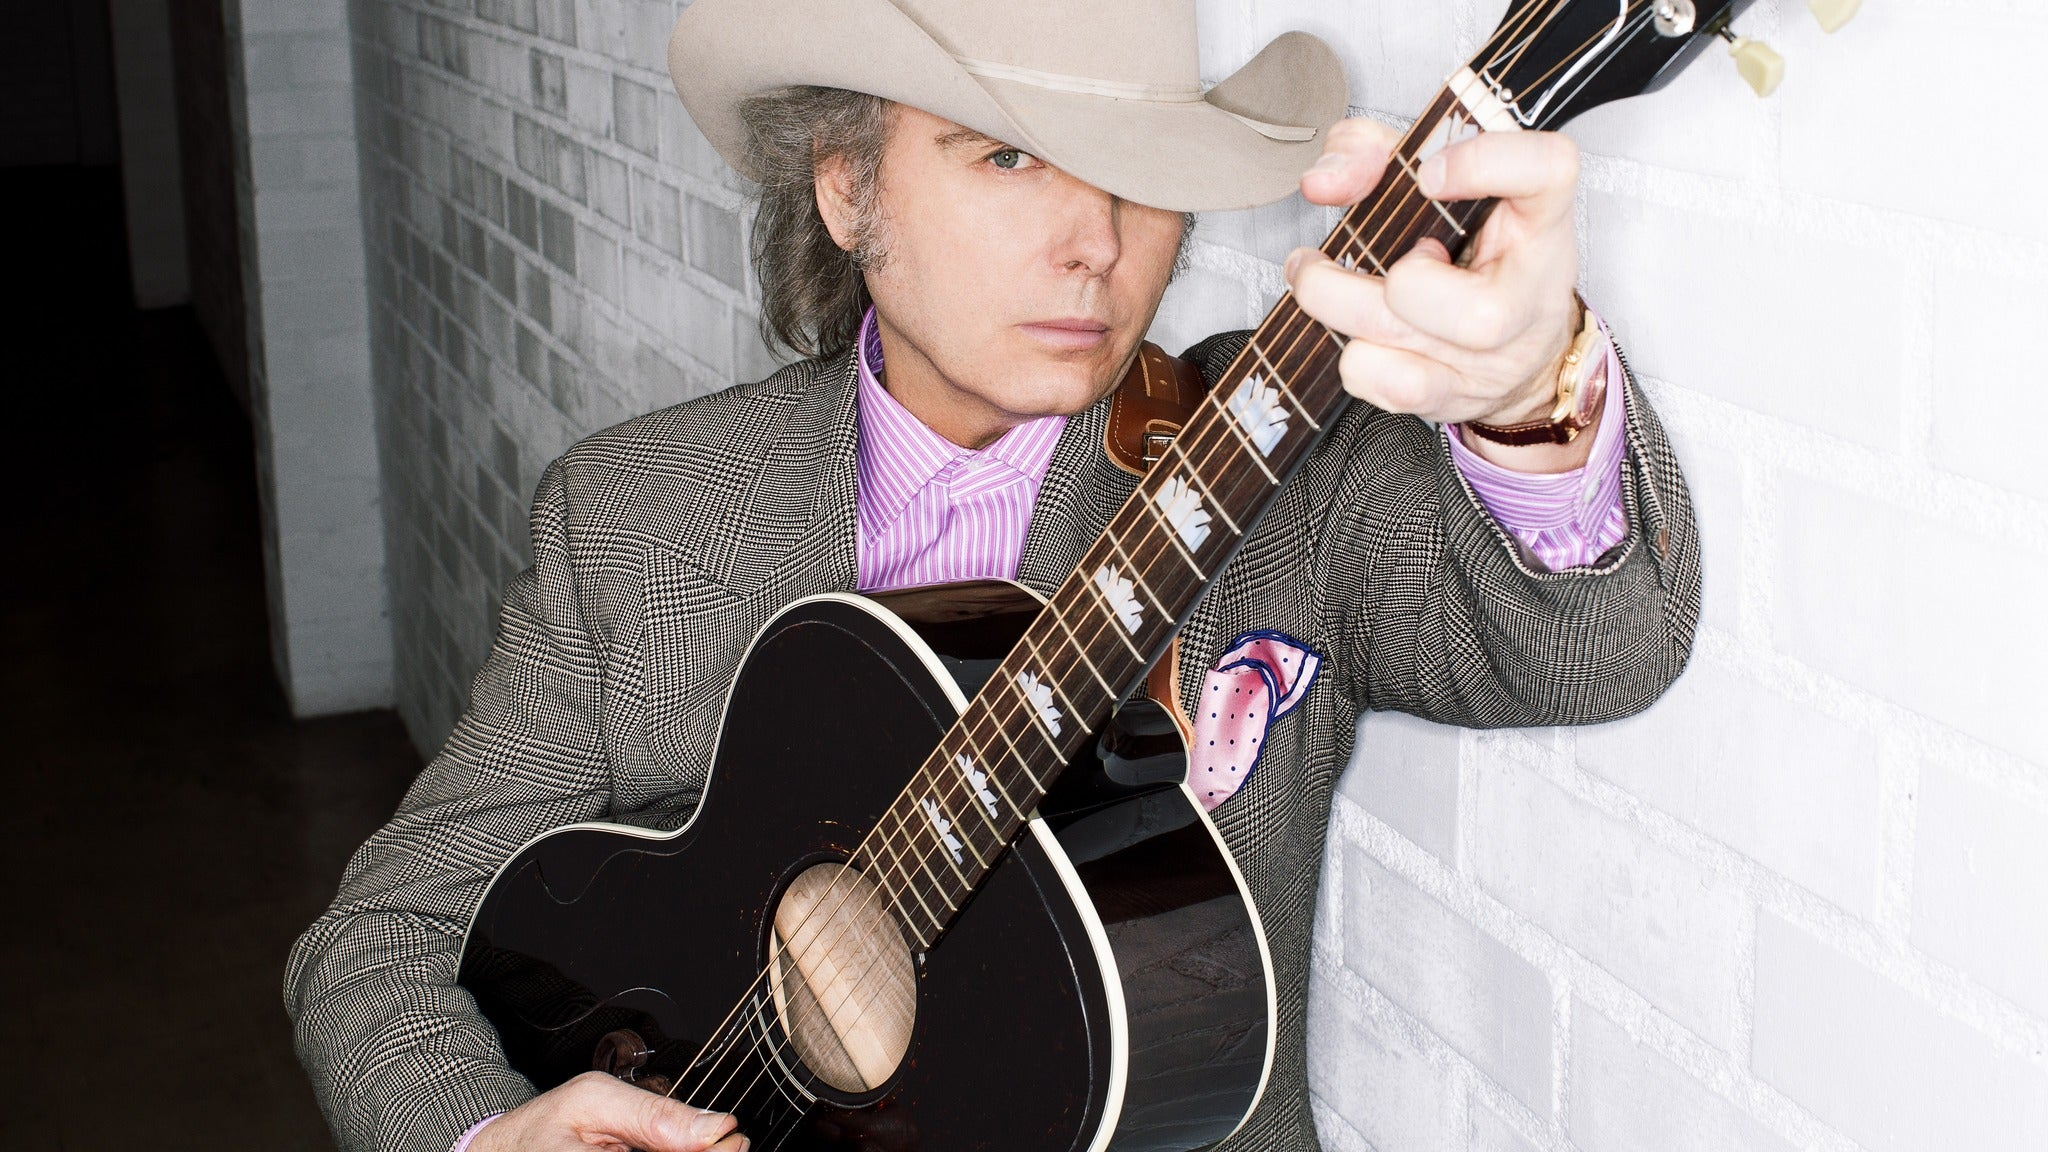 Dwight Yoakam at Snoqualmie Casino - WA - Snoqualmie, WA 98065